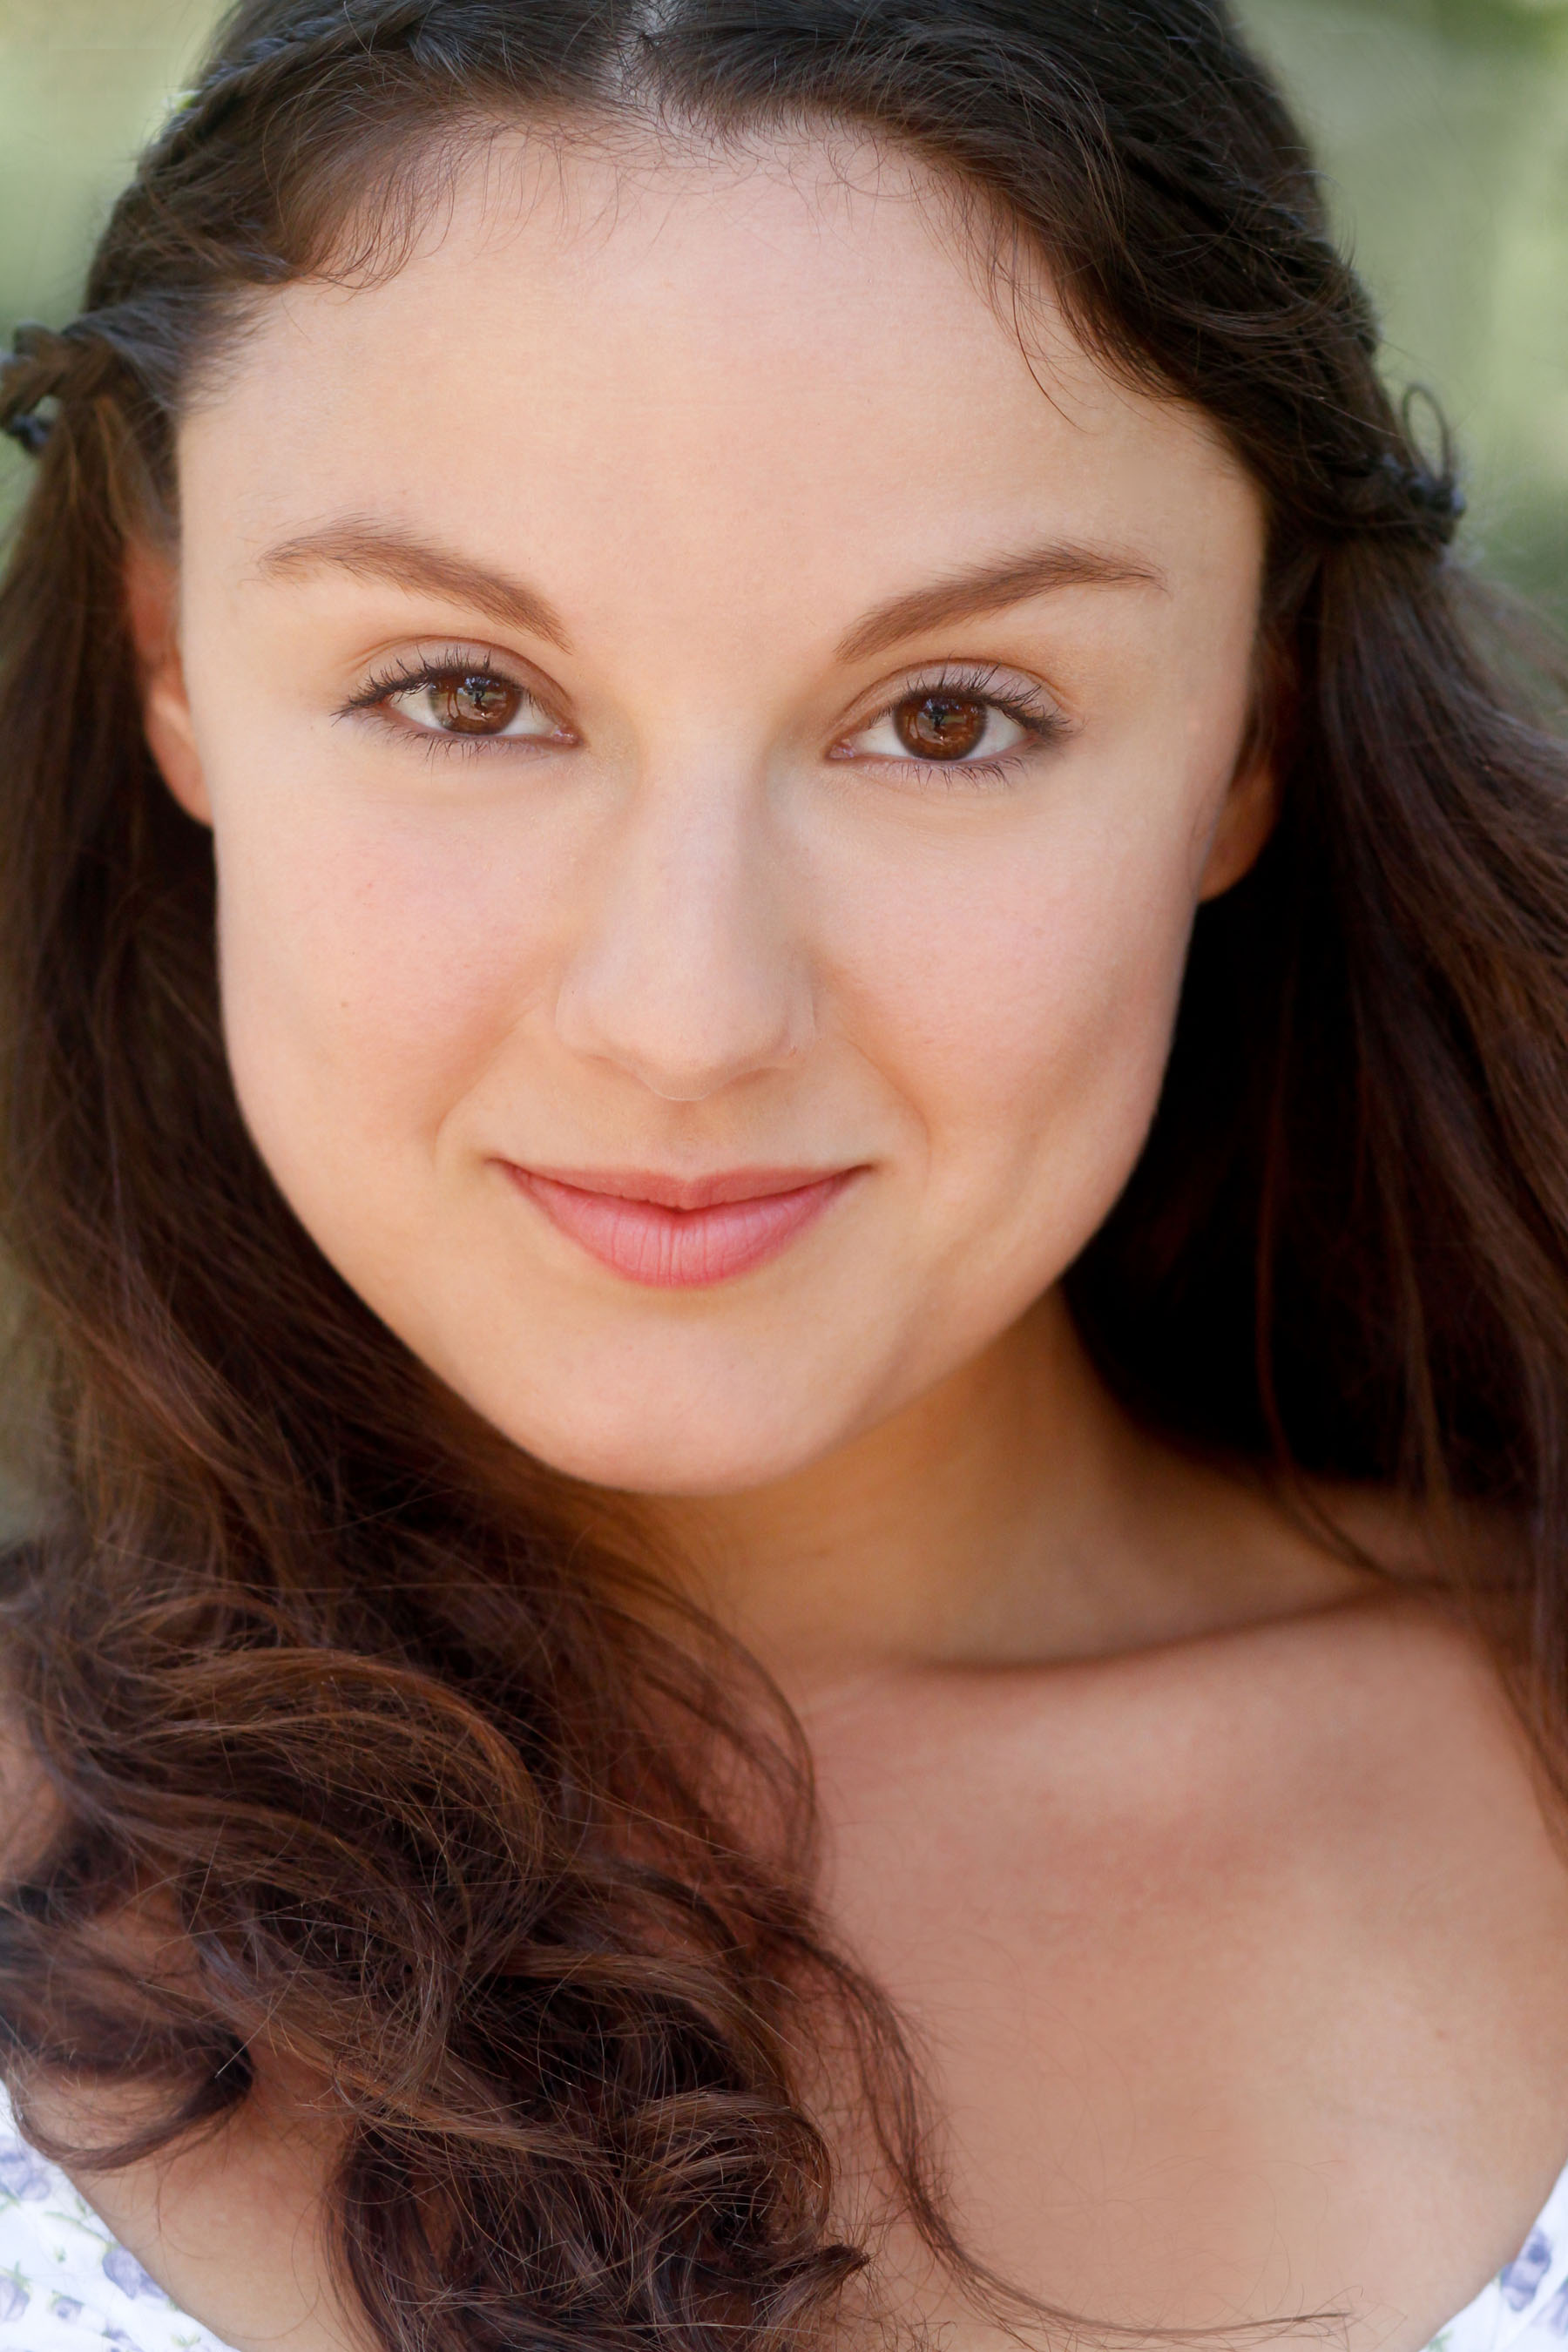 amie_alvarado_photography_los_angeles_actor_head_shot.jpg